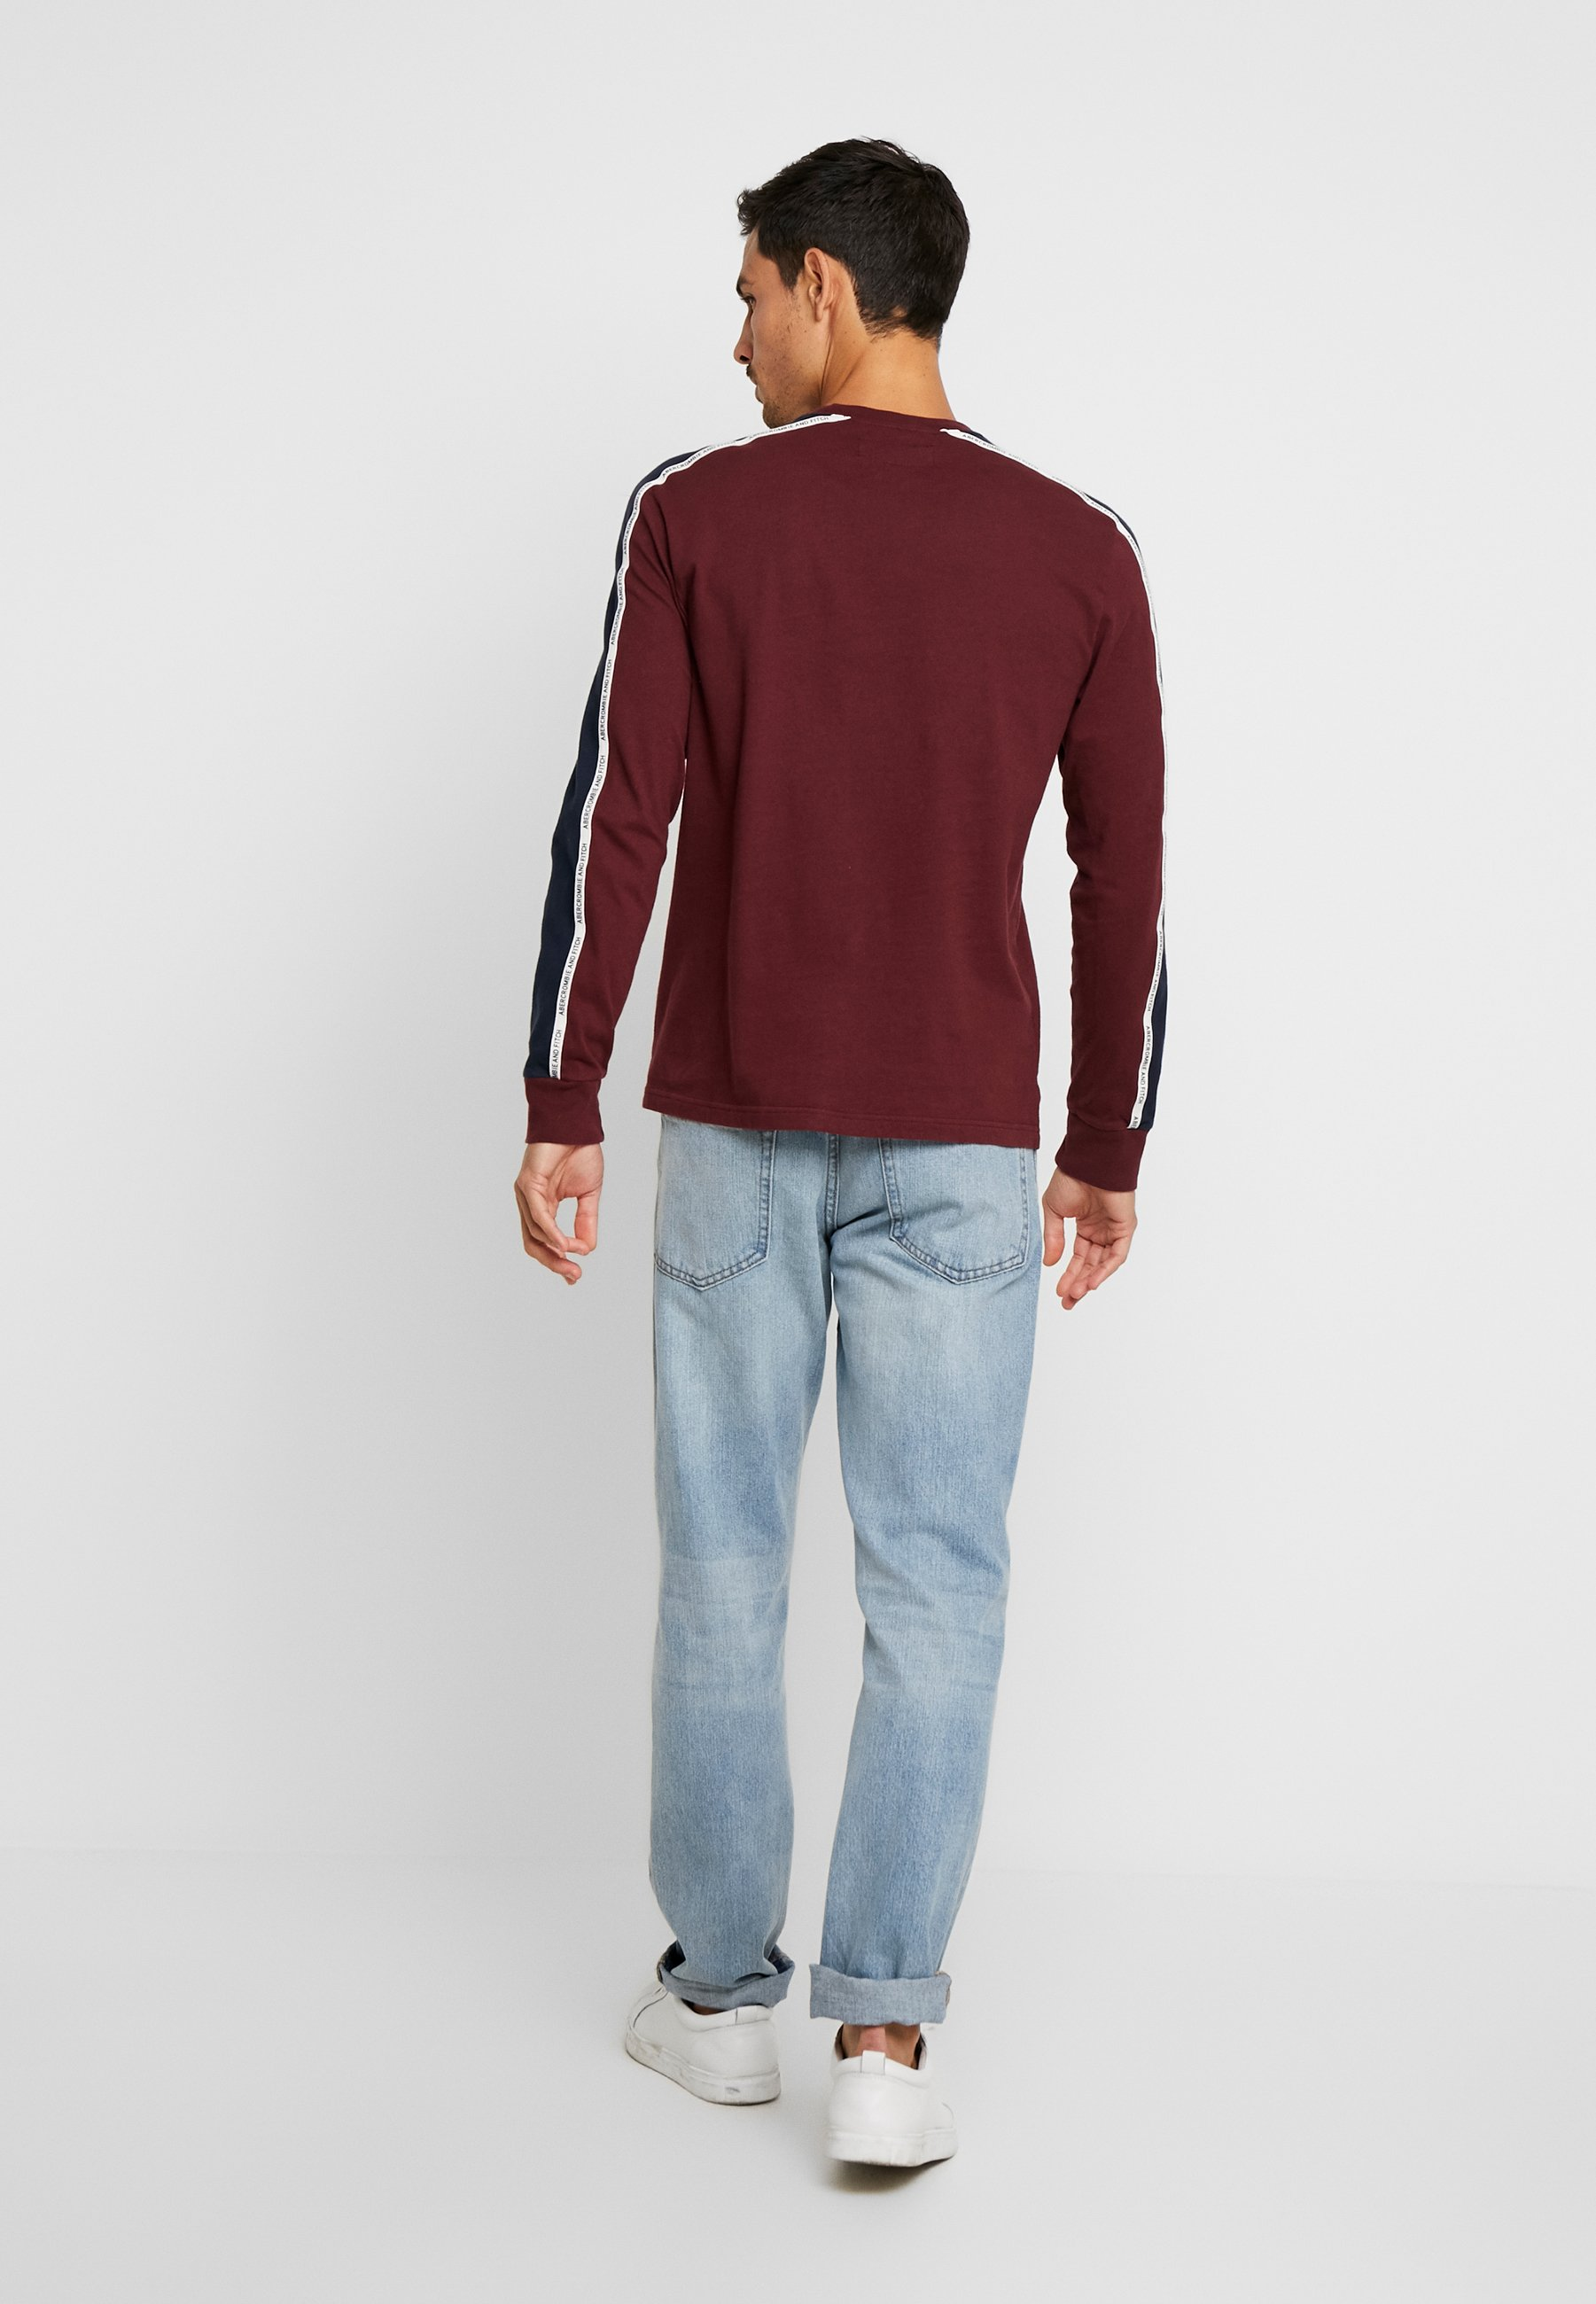 Abercrombieamp; Fitch Sleeved CrewT Longues shirt Burgundy Long À Manches Tape n0Pk8wO